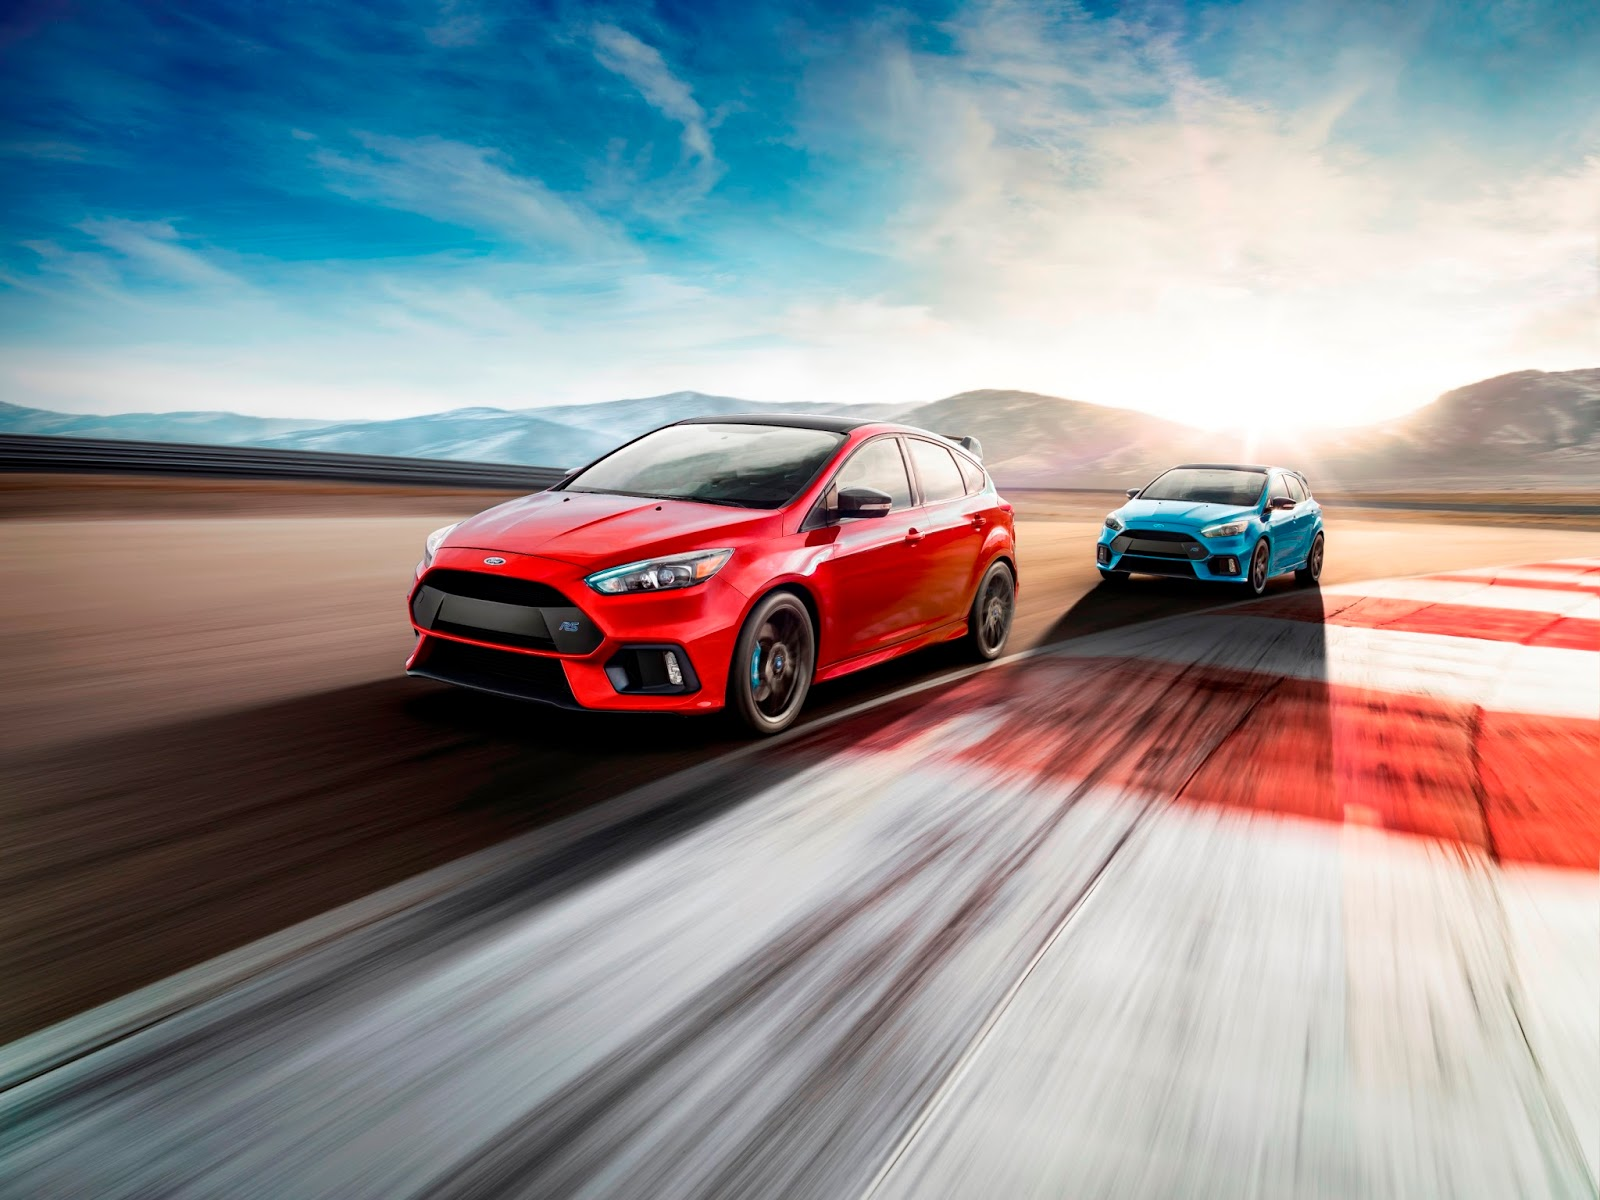 North America Image 2 Ford Focus RS Option Pack Edition : Το τέλειο βελτιώθηκε!